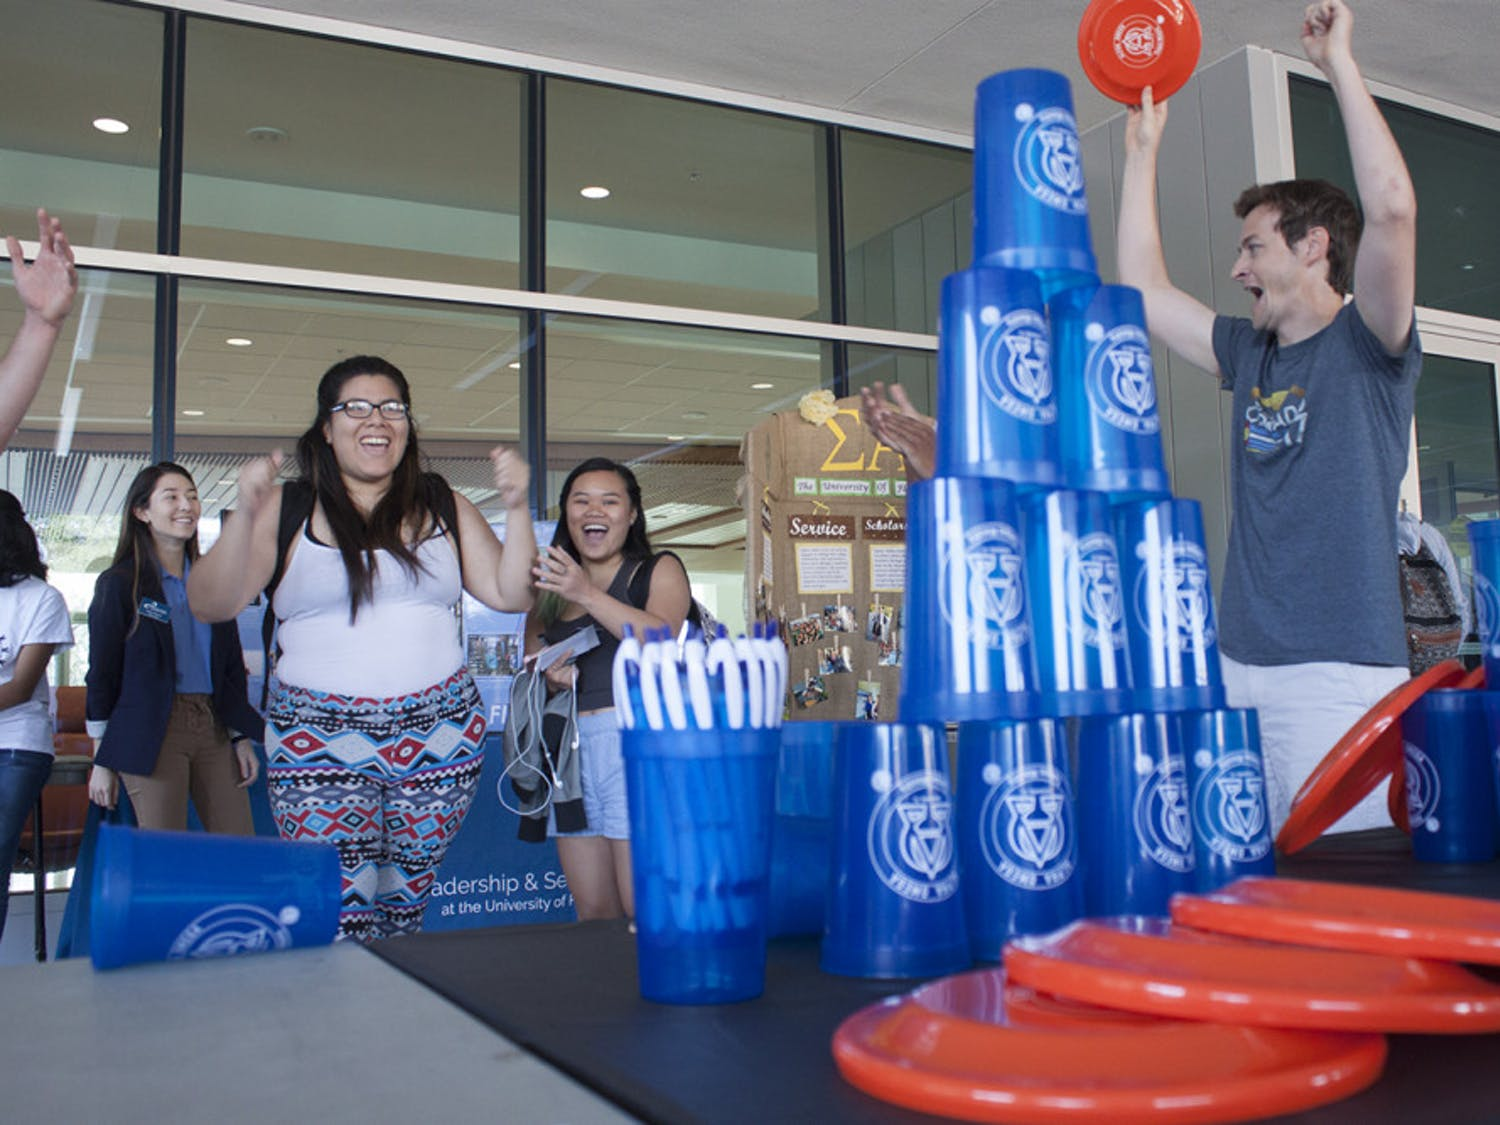 Hundreds of students came through the Reitz Union lawn to check out some of UF's organizations and get free pizza at the Spring 2017 Student Organization Fair on Wednesday. The fair was hosted by the Department of Student Activities and Involvement and the Involvement Team. It ran from 10 a.m. until 2 p.m. Organizations and clubs, from the Hip-Hop Collective to the UF Data Science and Informatics Student Organization, tabled on the lawn to give information to prospective club members. Whether it was geocaching, Japanese culture, a club for first-generation college students or the Theatre Strike Force, there was a booth at the Spring 2017 Student Organization Fair helping students get involved on campus.